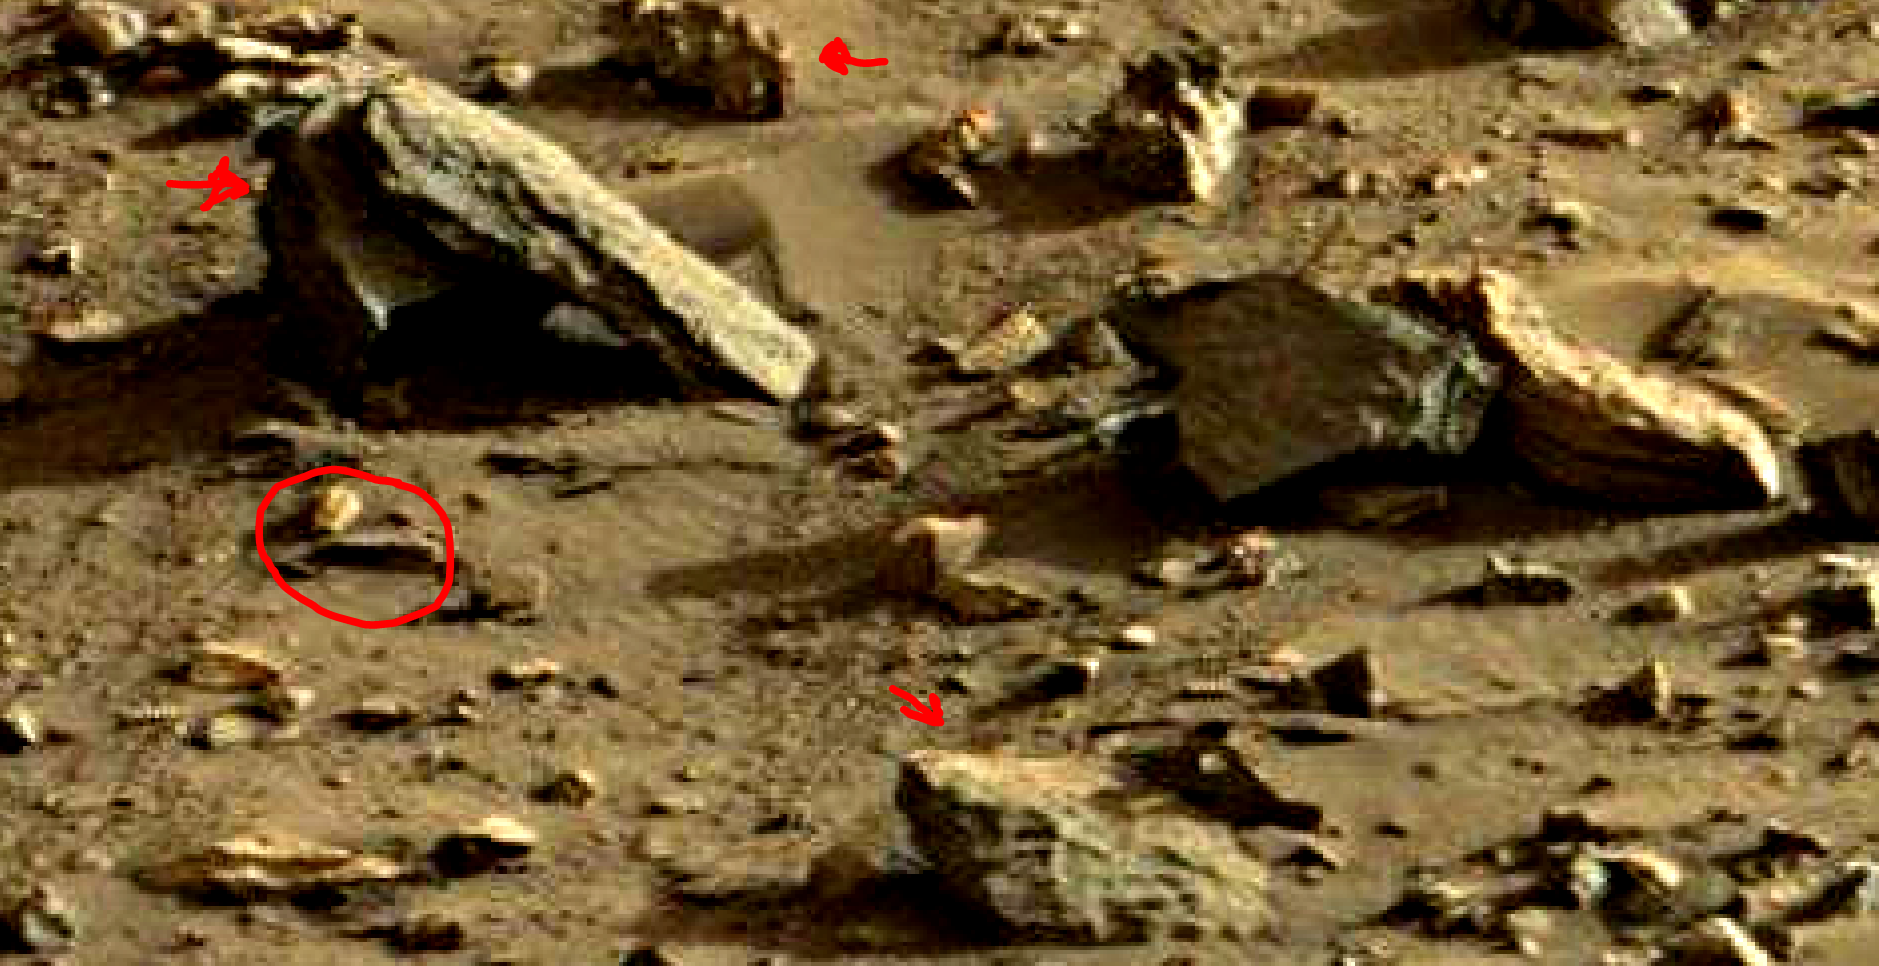 mars sol 1419 anomaly artifacts 12a was life on mars